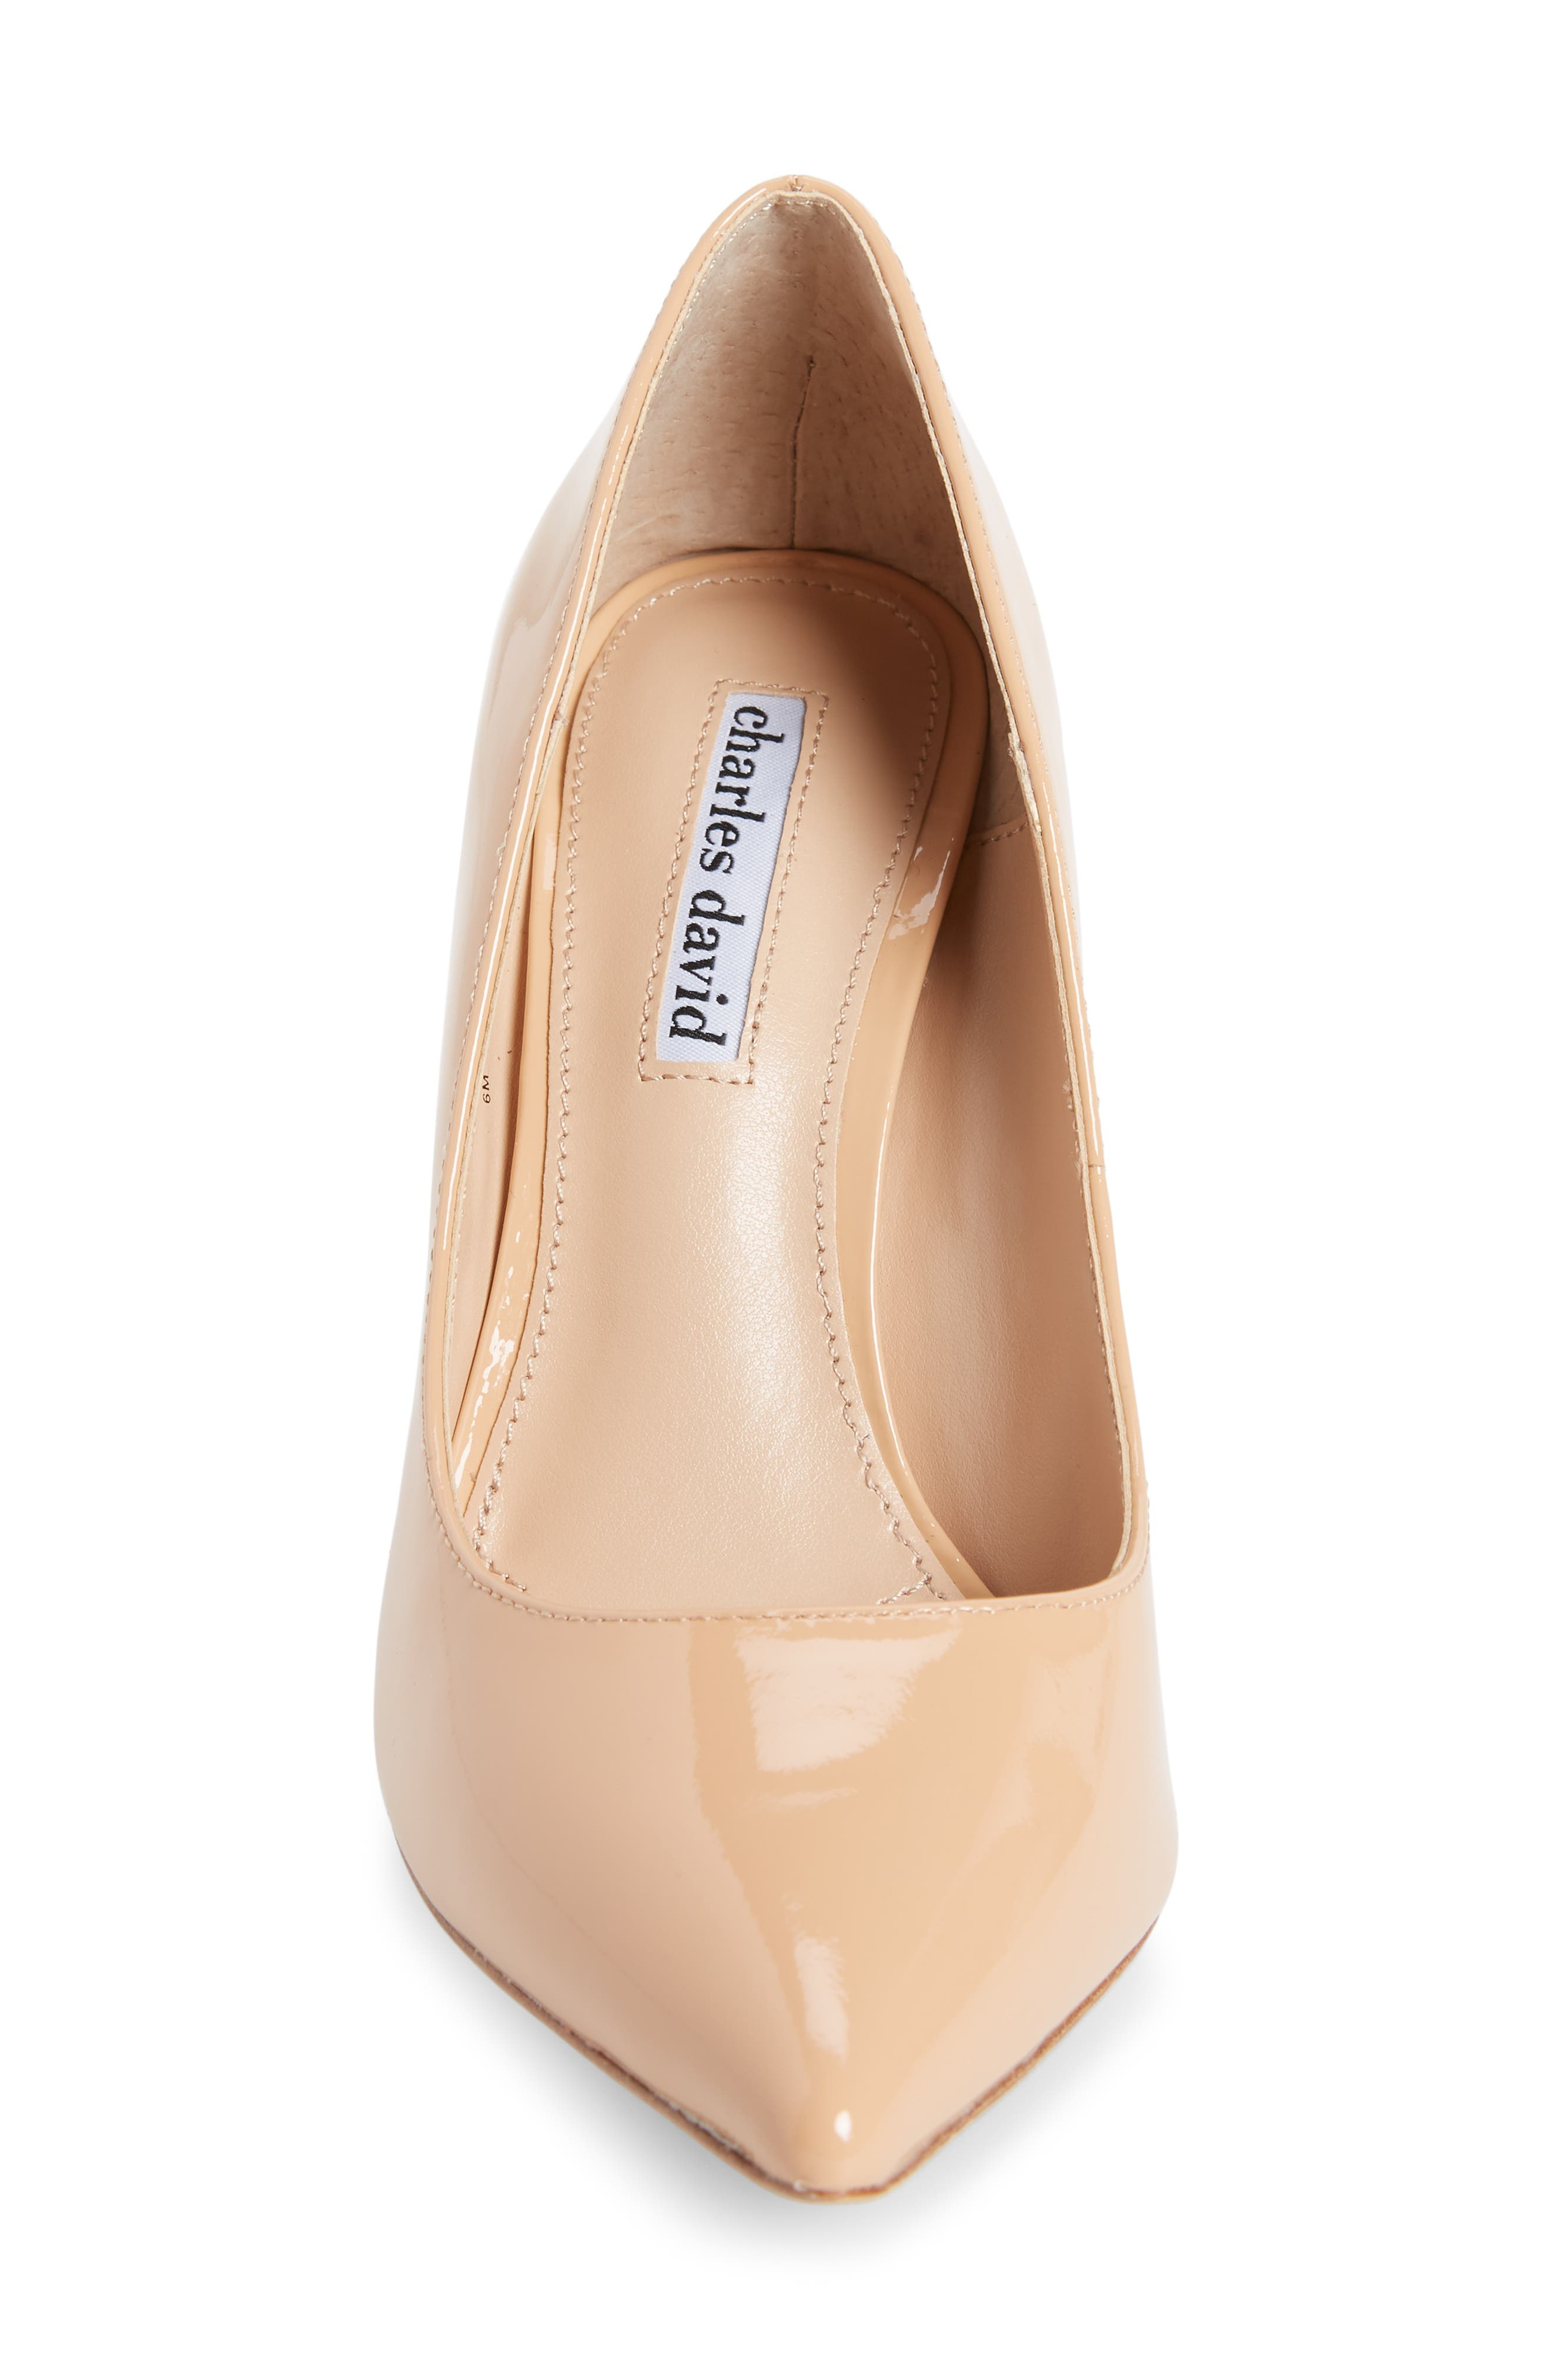 Calessi Pointy Toe Pump,                             Alternate thumbnail 4, color,                             PETAL PATENT LEATHER